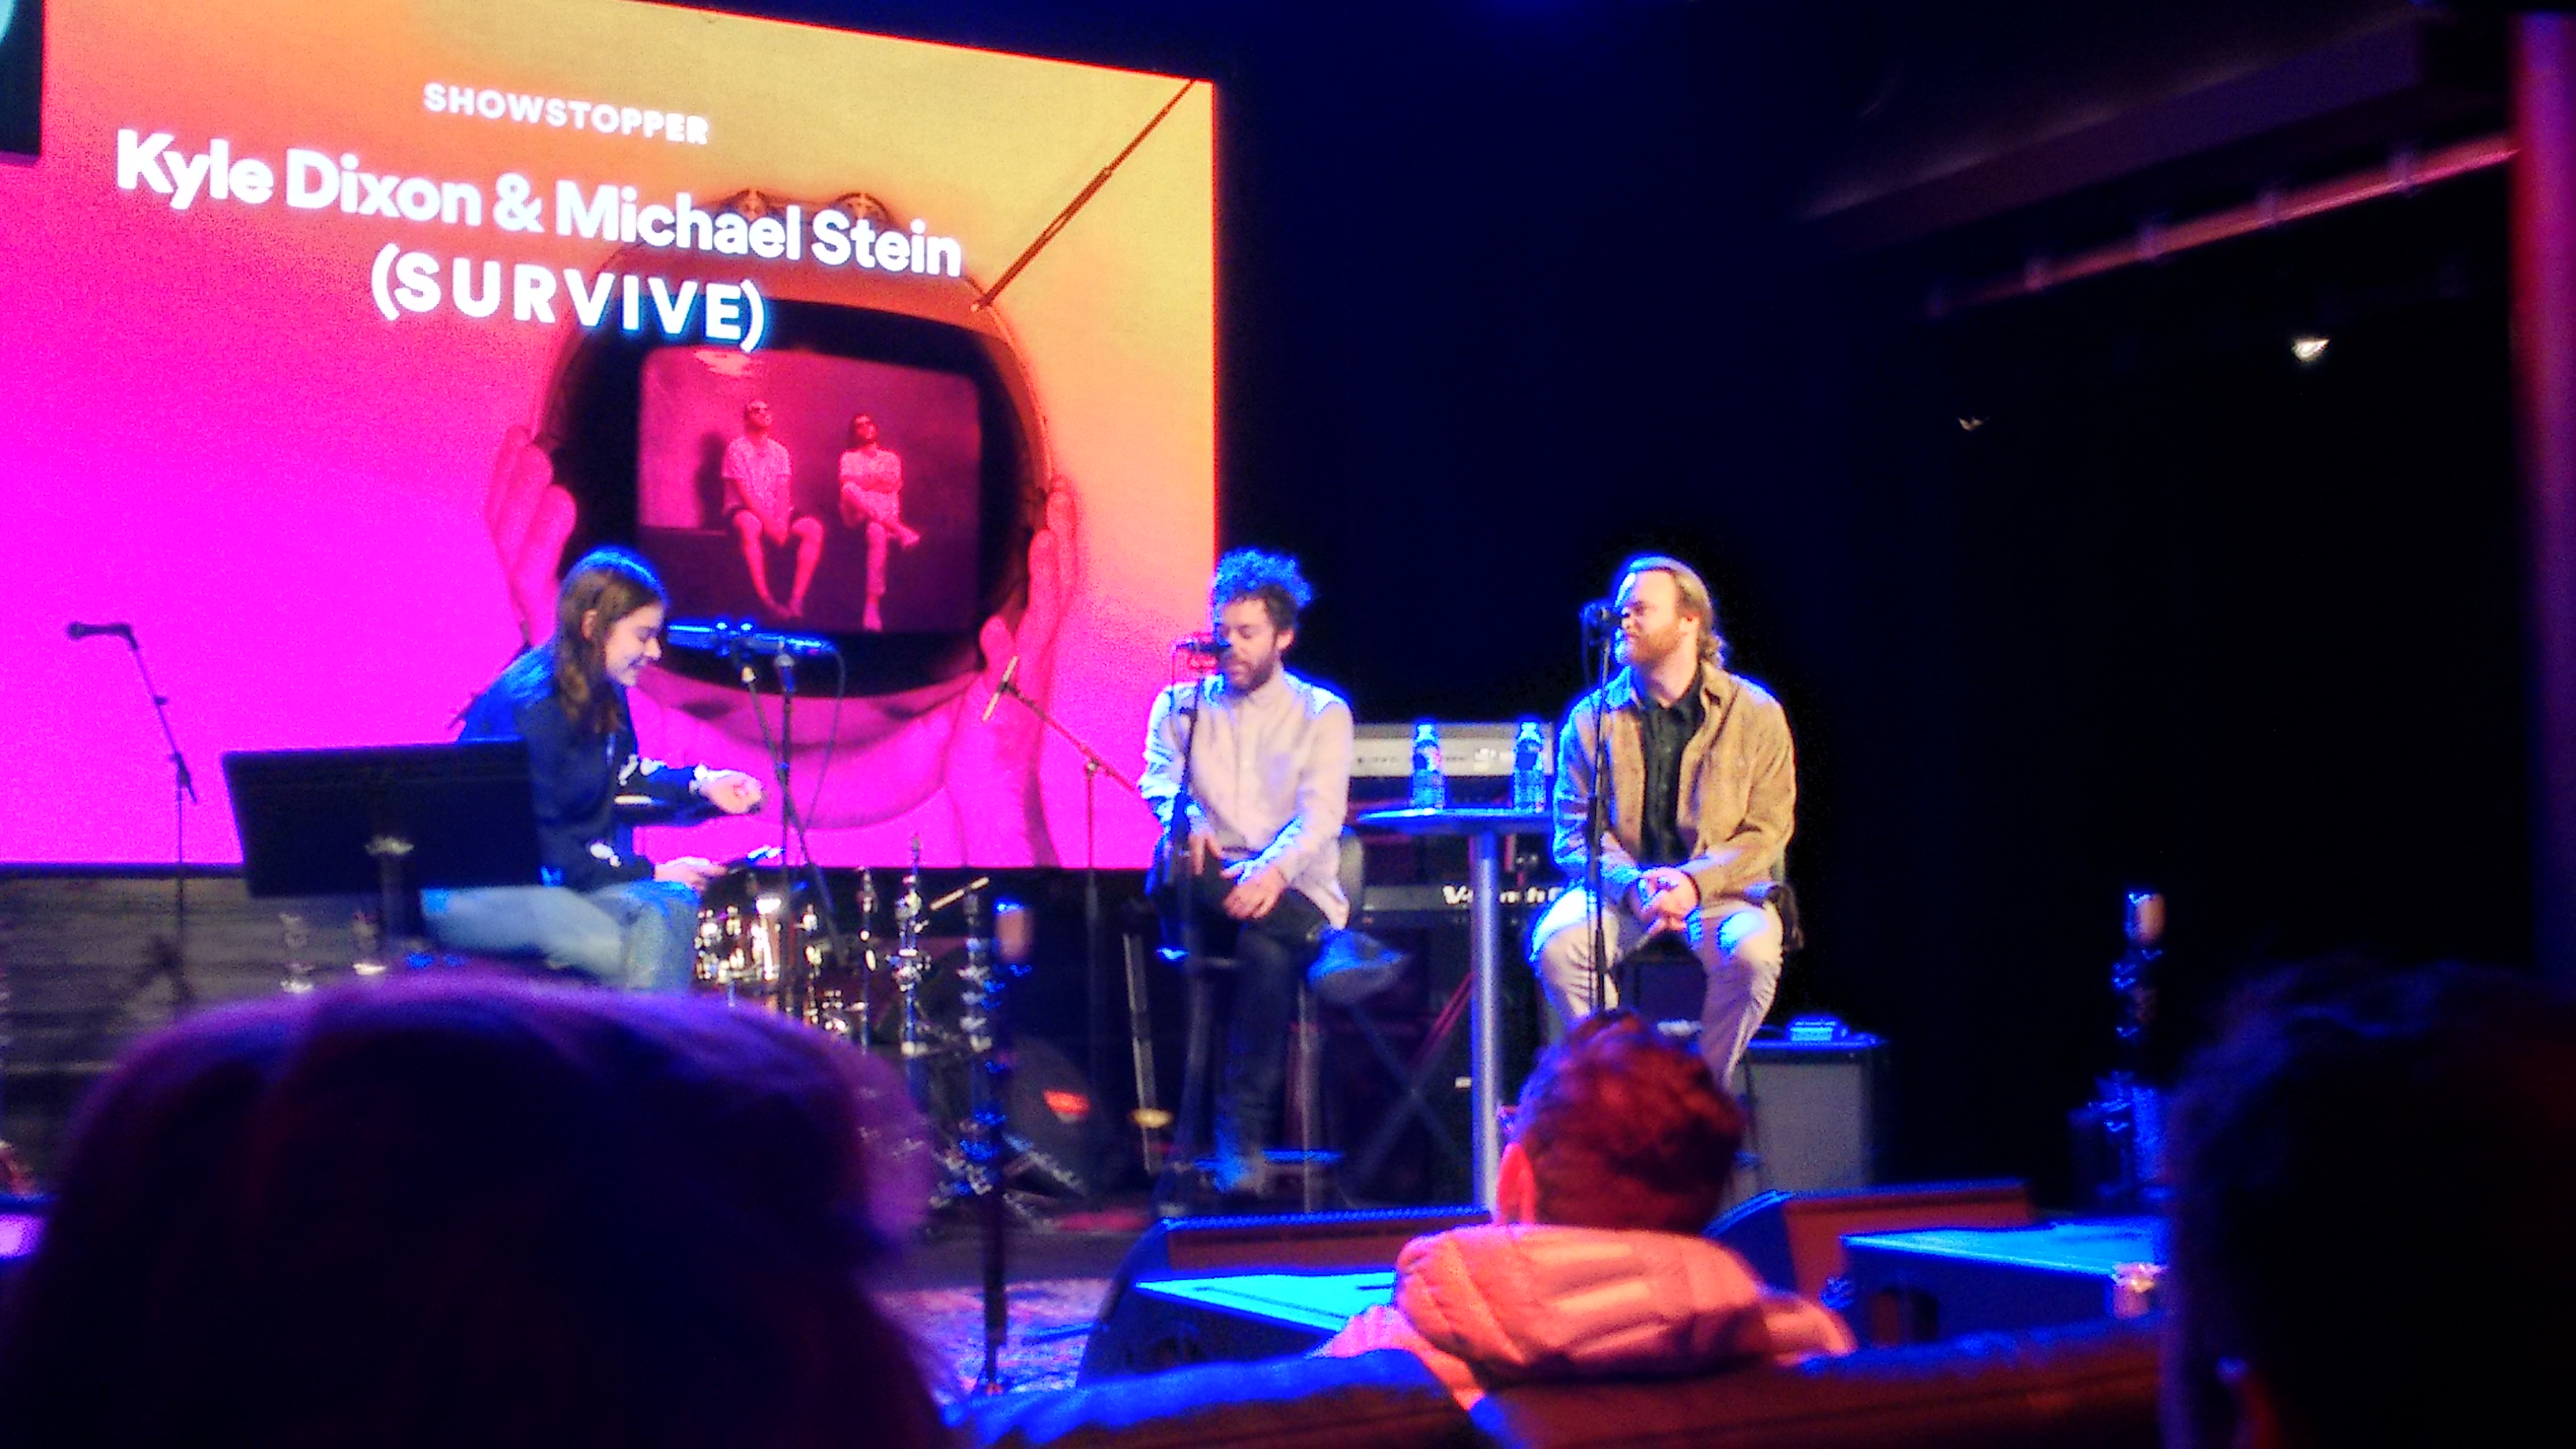 Michael Stein (far right) and Kyle Dixon of S U R V I V E / <em>Stranger Things</em> fame. (Spotify wouldn't allow cameras with detachable lenses during the taping; apologies on the Moto G 2014 image quality.)